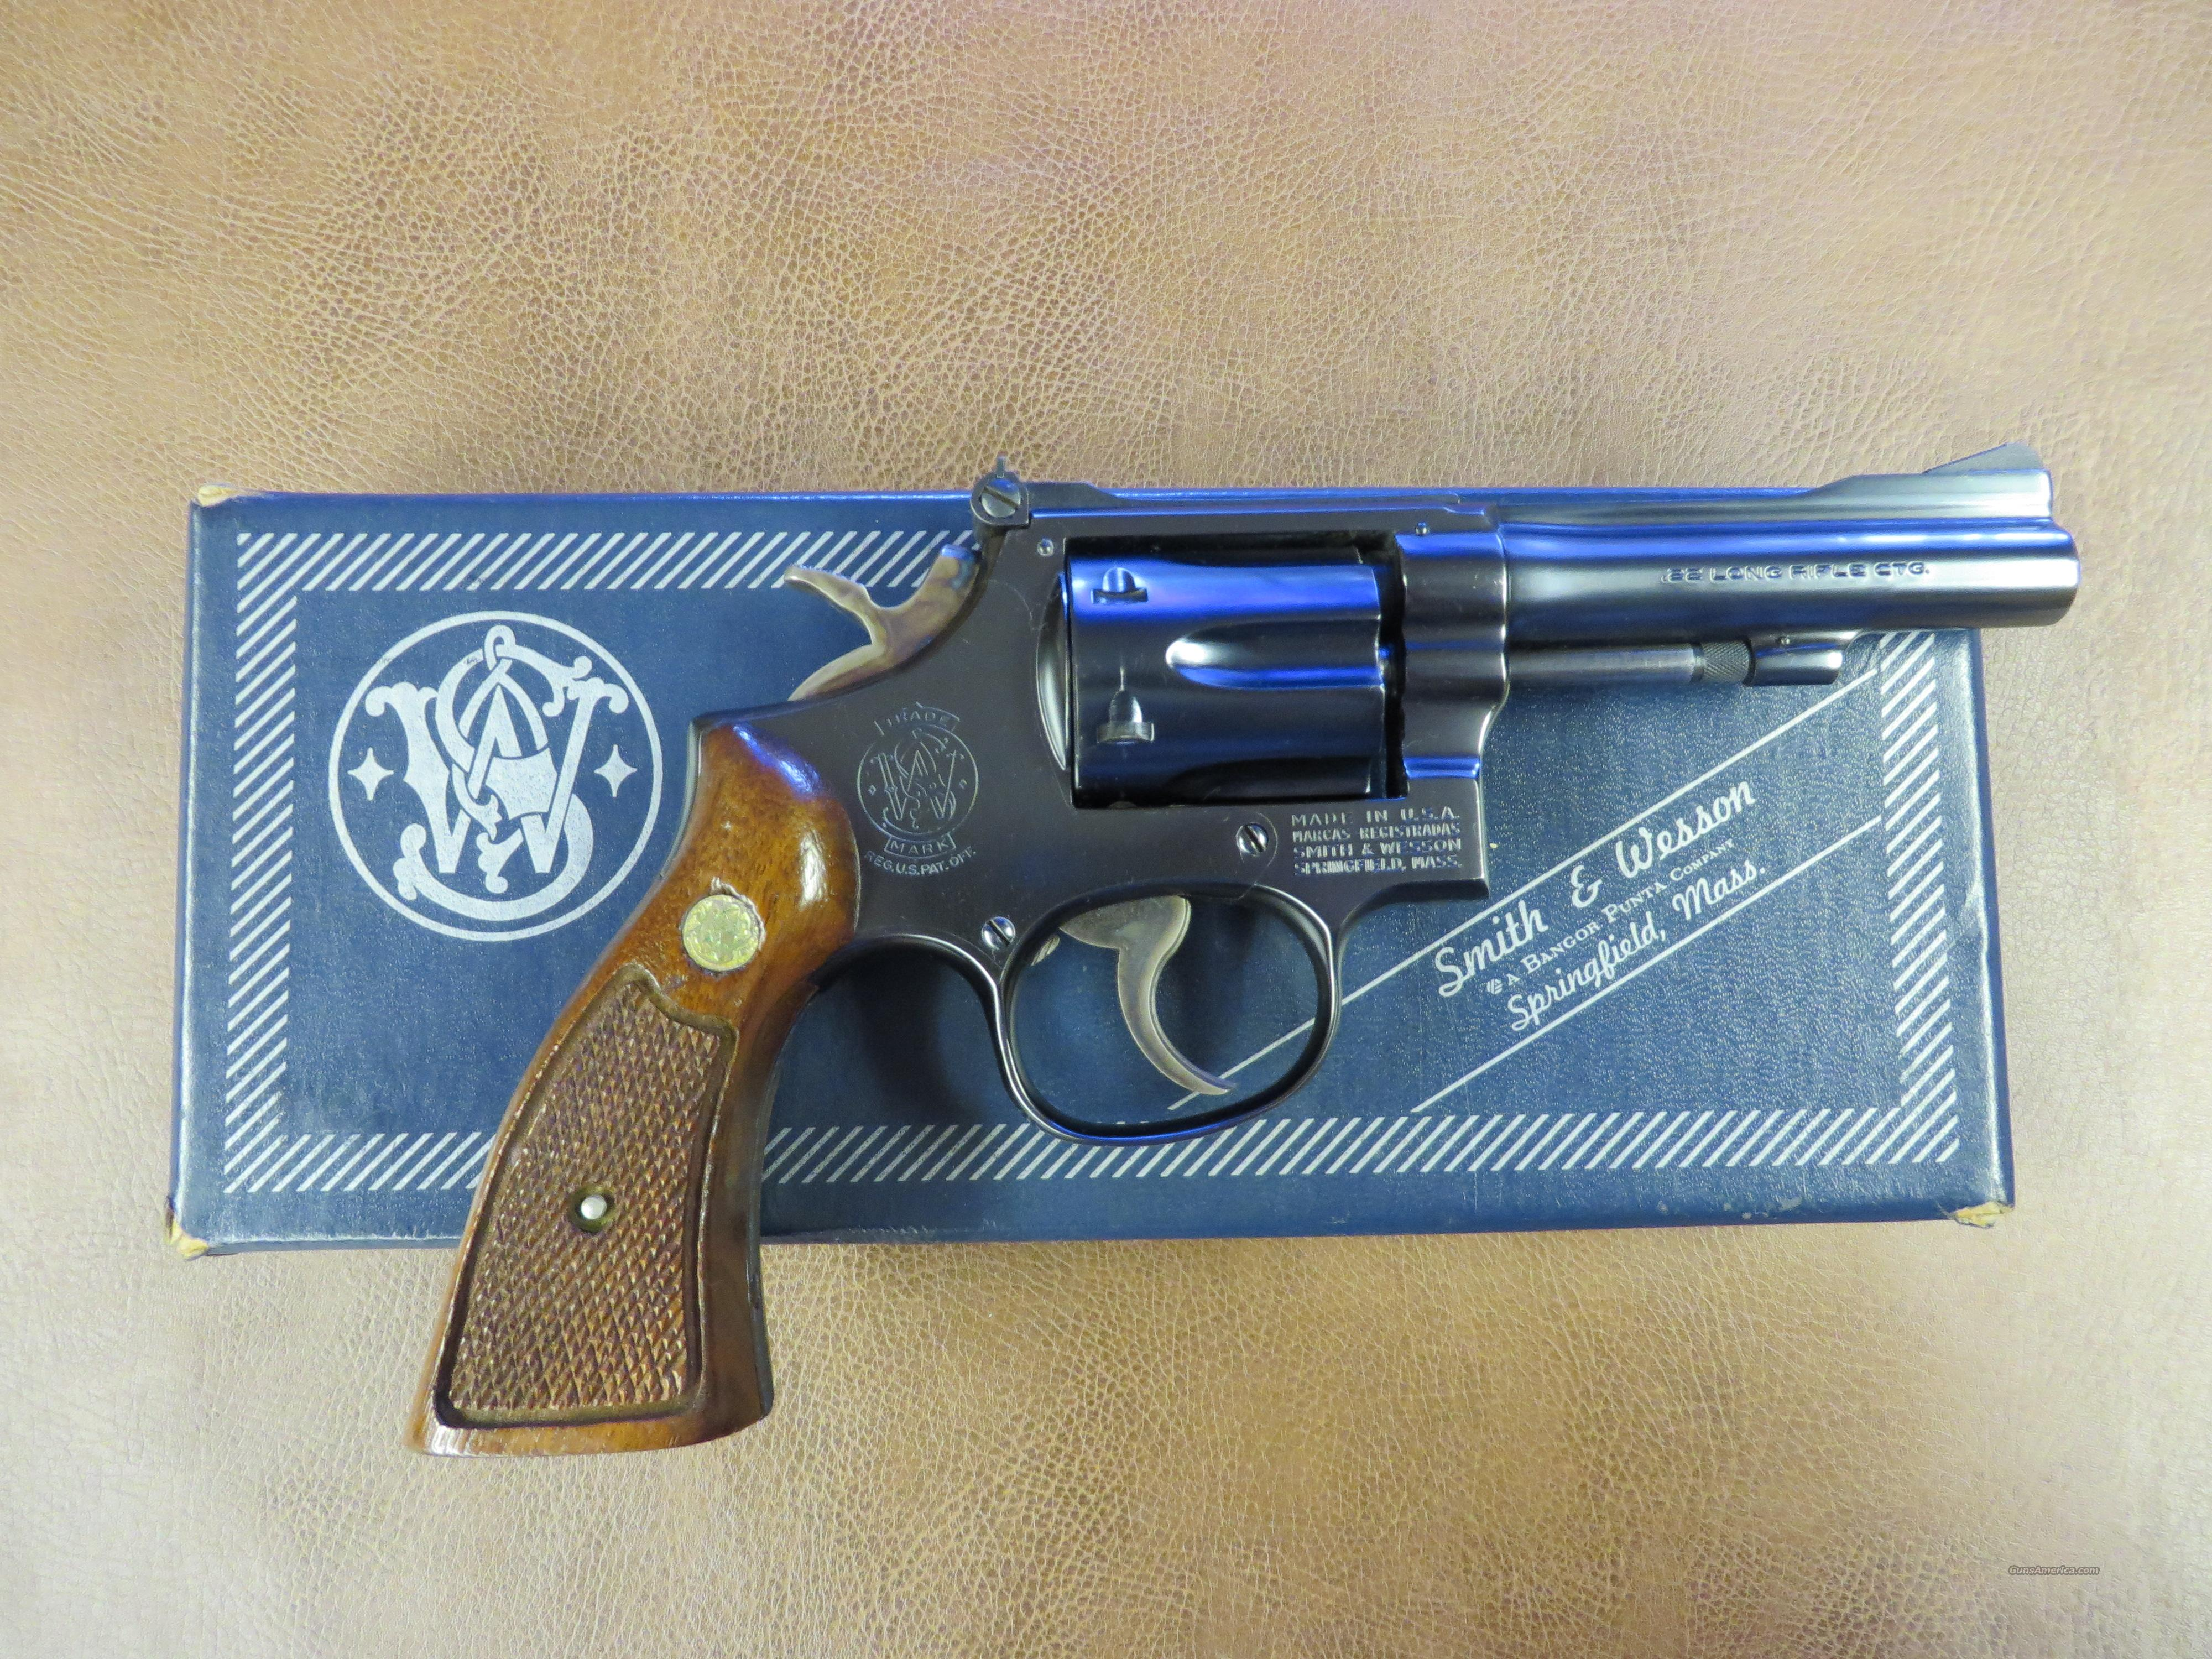 S&W Model 18-4  Guns > Pistols > Smith & Wesson Revolvers > Full Frame Revolver